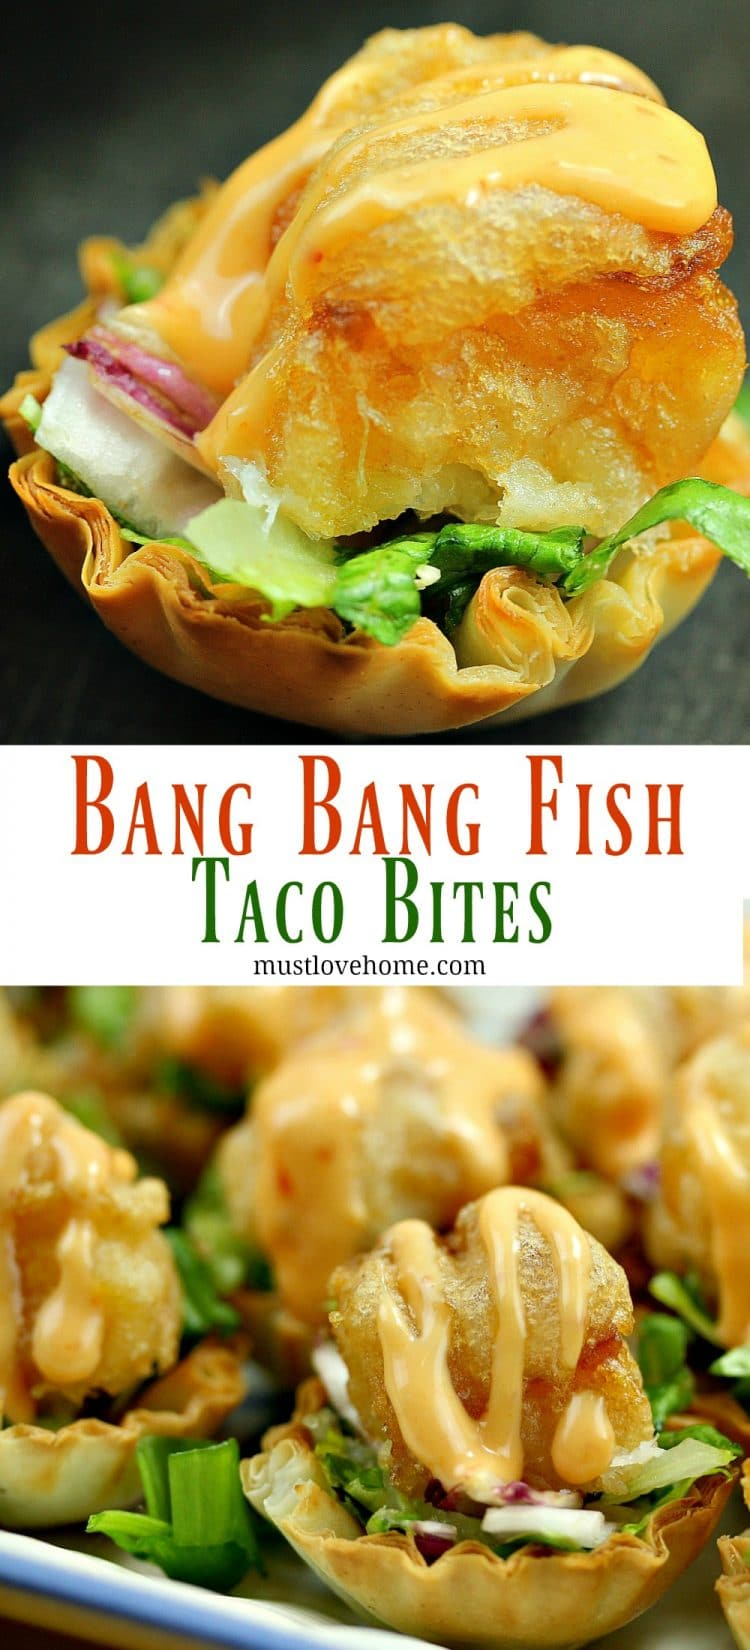 Bang Bang Fish Taco Bites